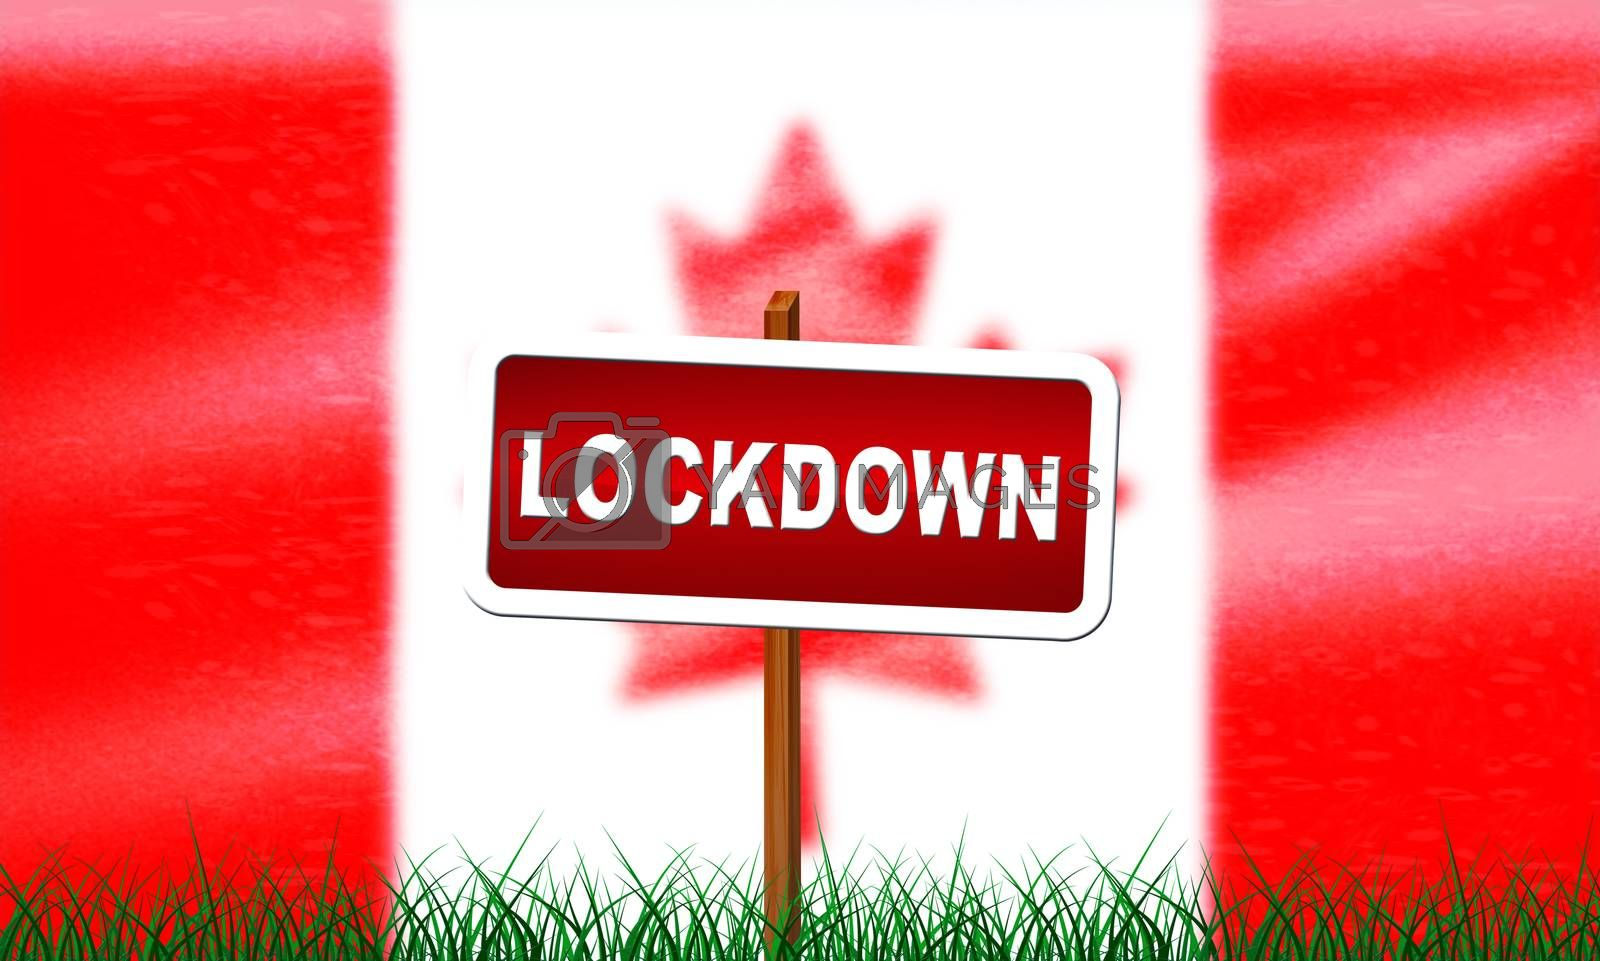 Canada lockdown preventing coronavirus spread or outbreak. Covid 19 canadian precaution to lock down virus infection - 3d Illustration